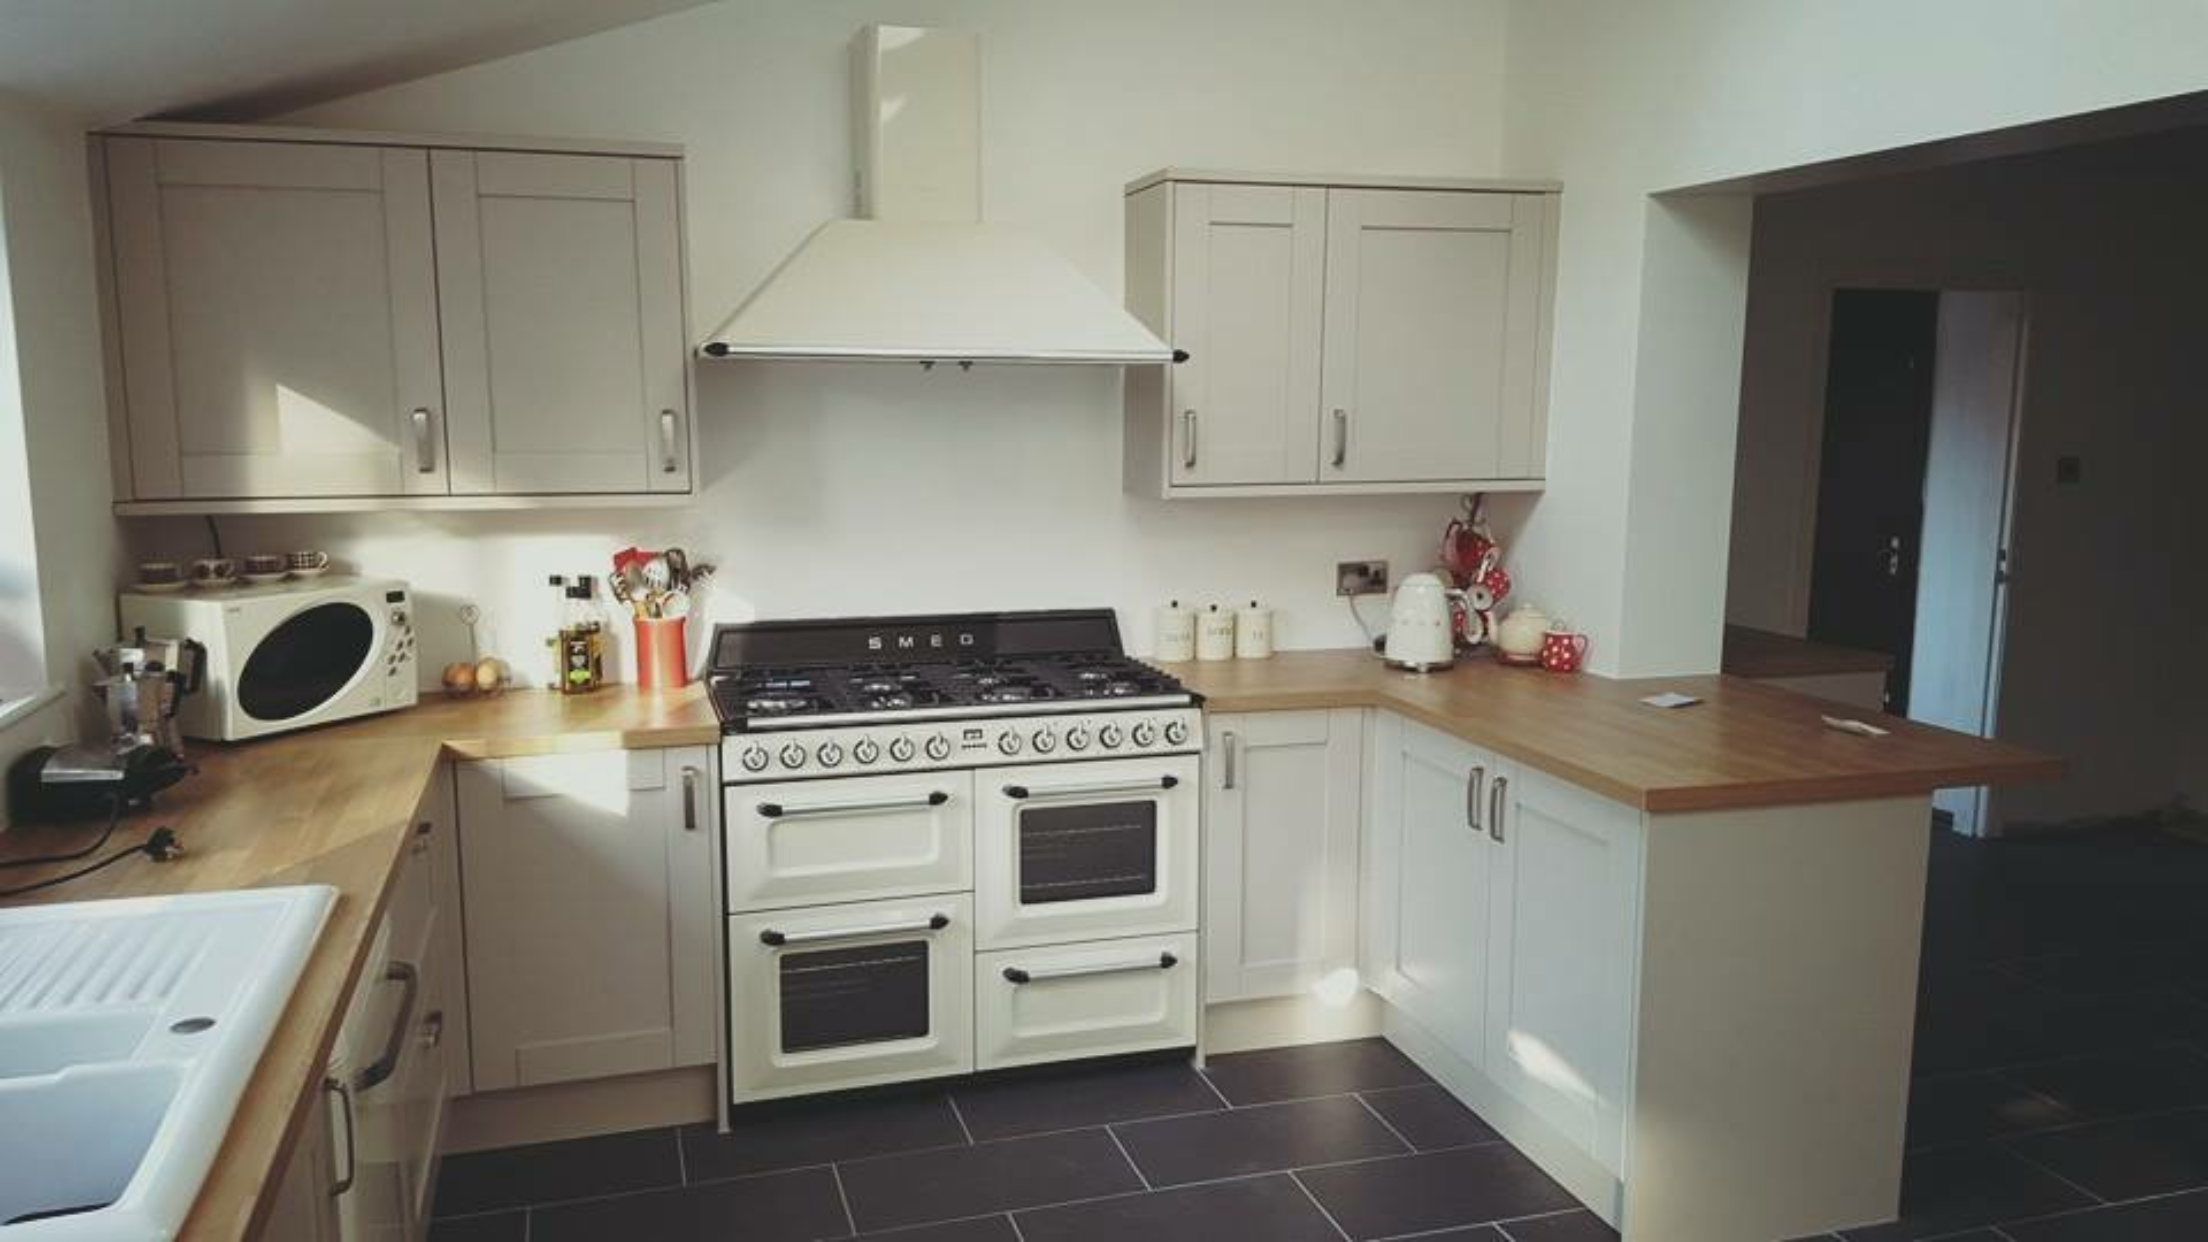 Howdens The UK's Number 1 Trade Kitchen Supplier Free